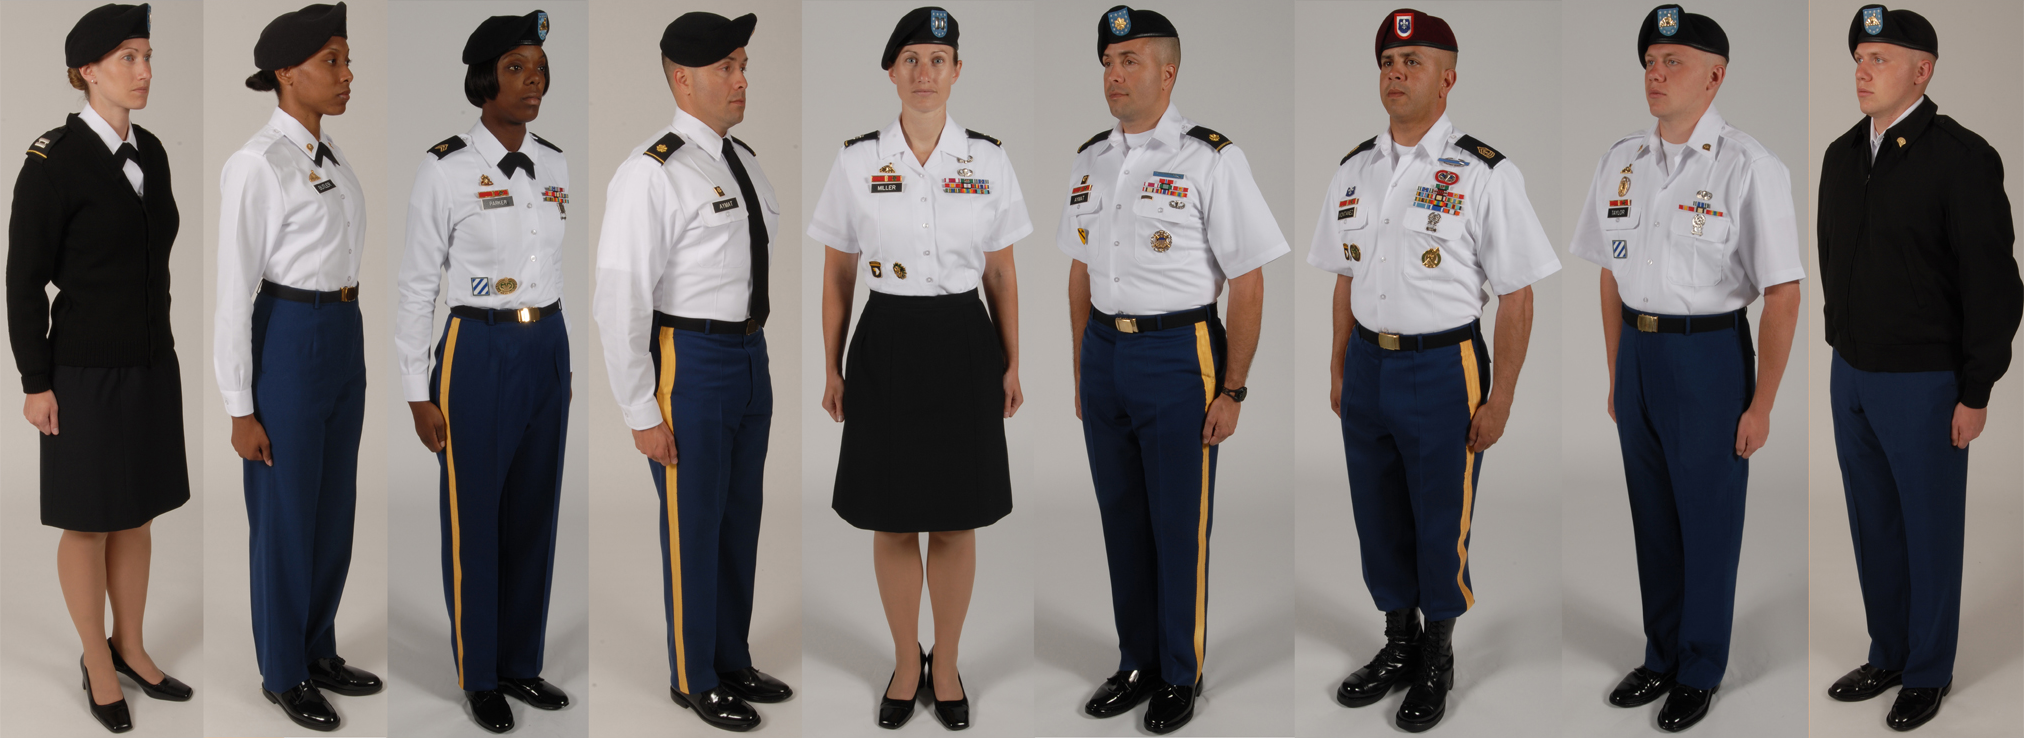 Original Dress Blue Uniform For Aviation And Airborne Troops Winter Dress